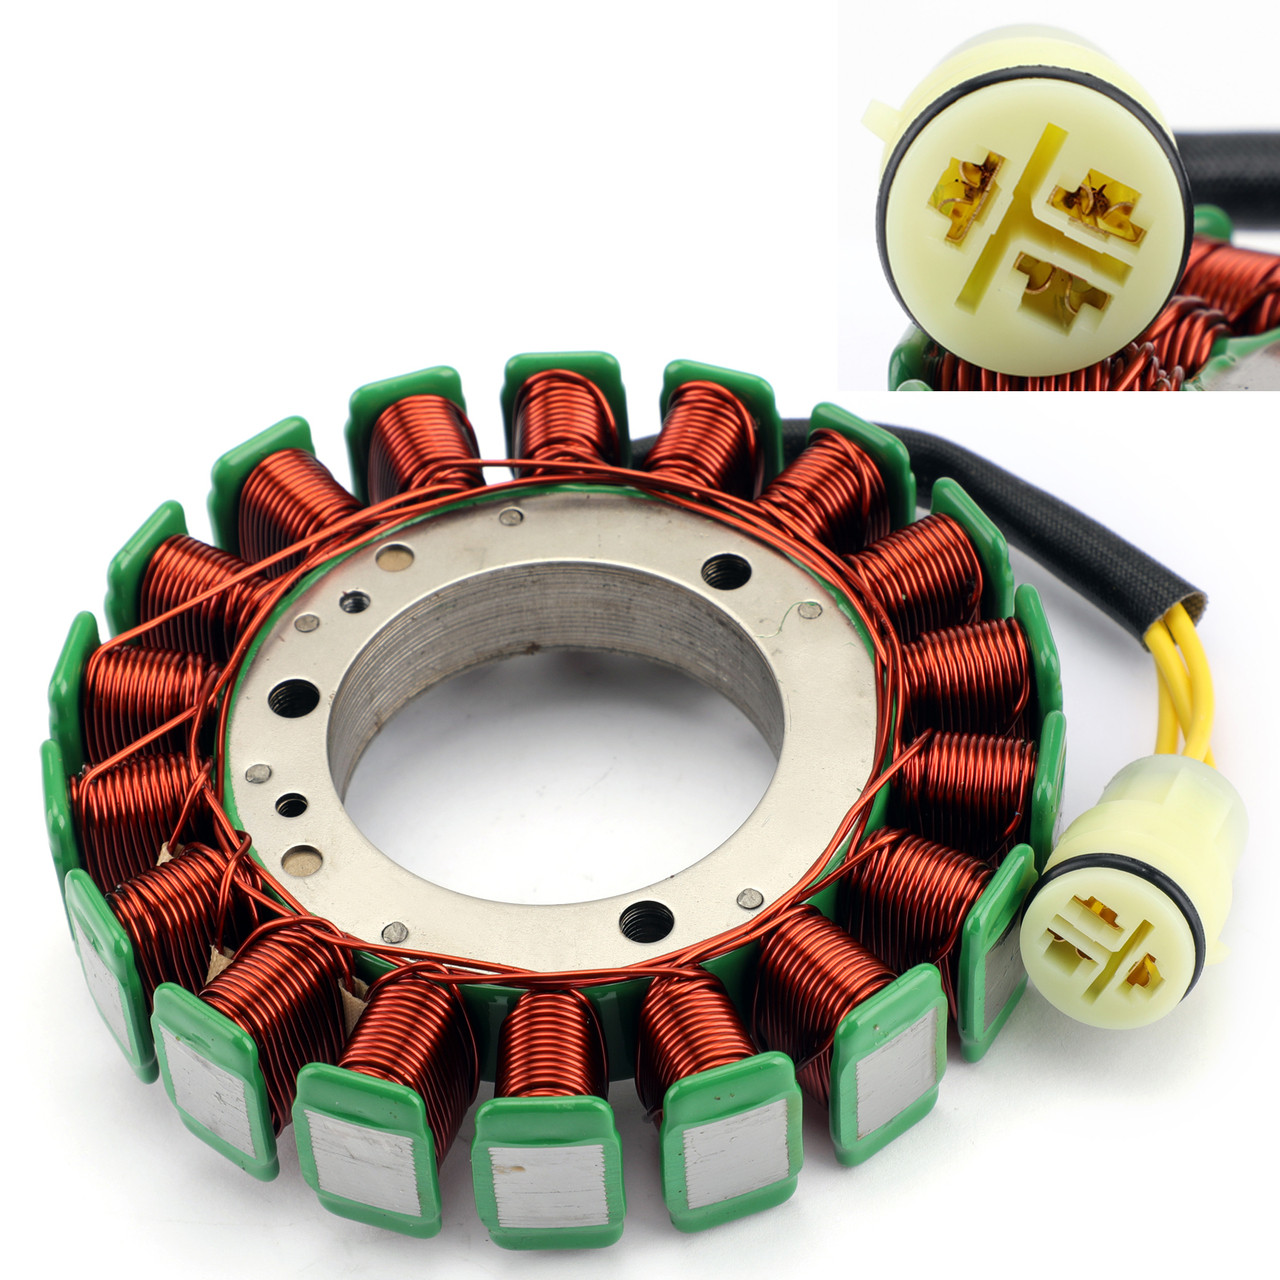 Outboard Stator Battery Charging Coil 18 Poles For Suzuki DF60 DF70  1998-2009